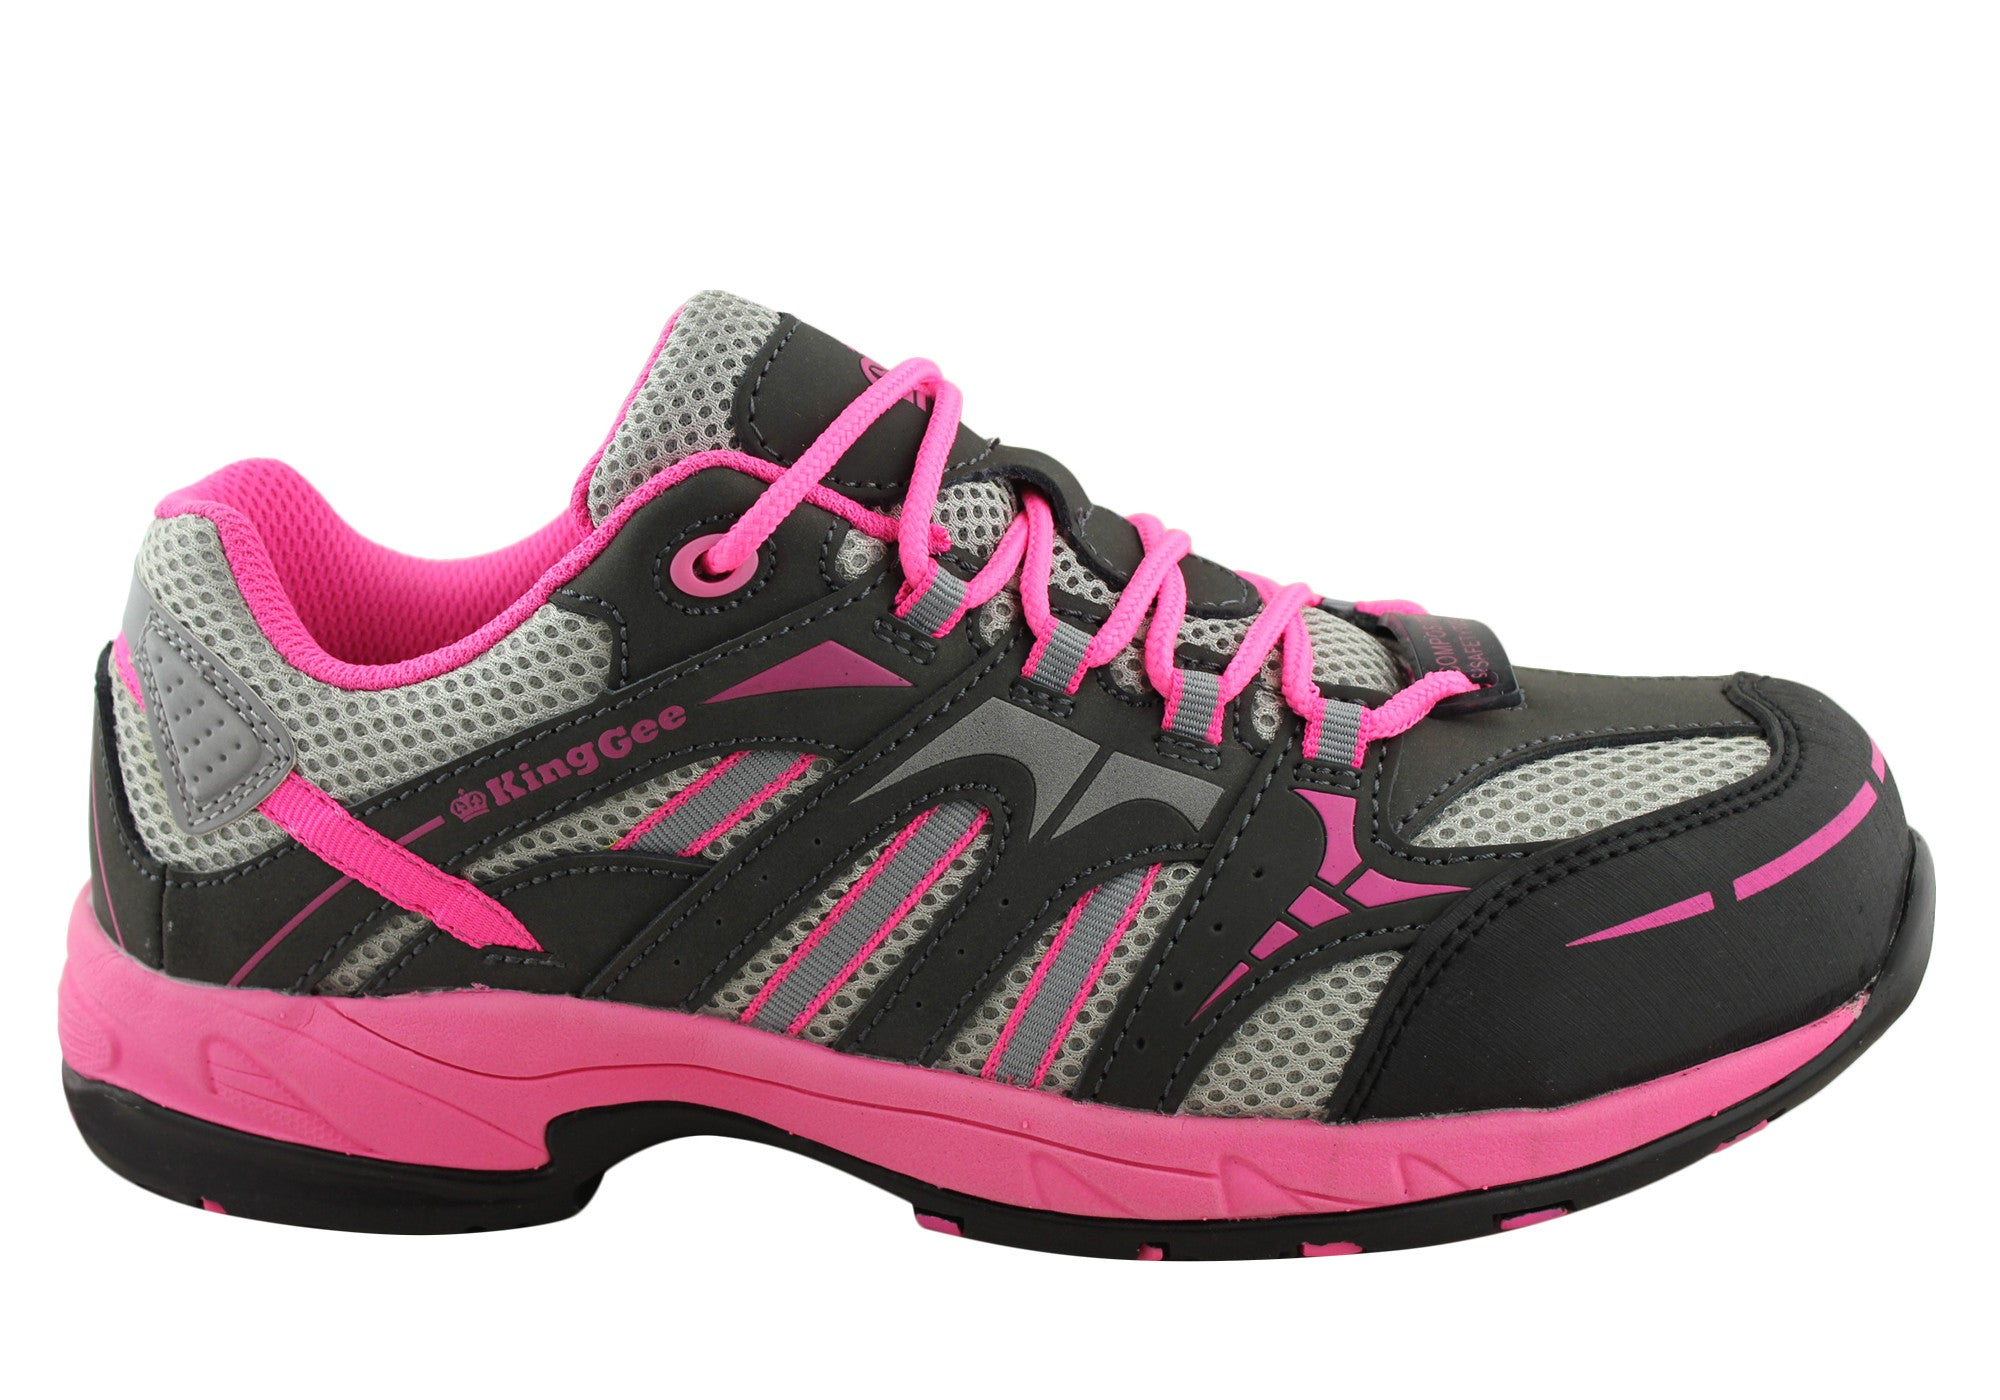 King Gee Womens Comp-Tec G3 Composite Toe Safety Shoes | Brand House Direct